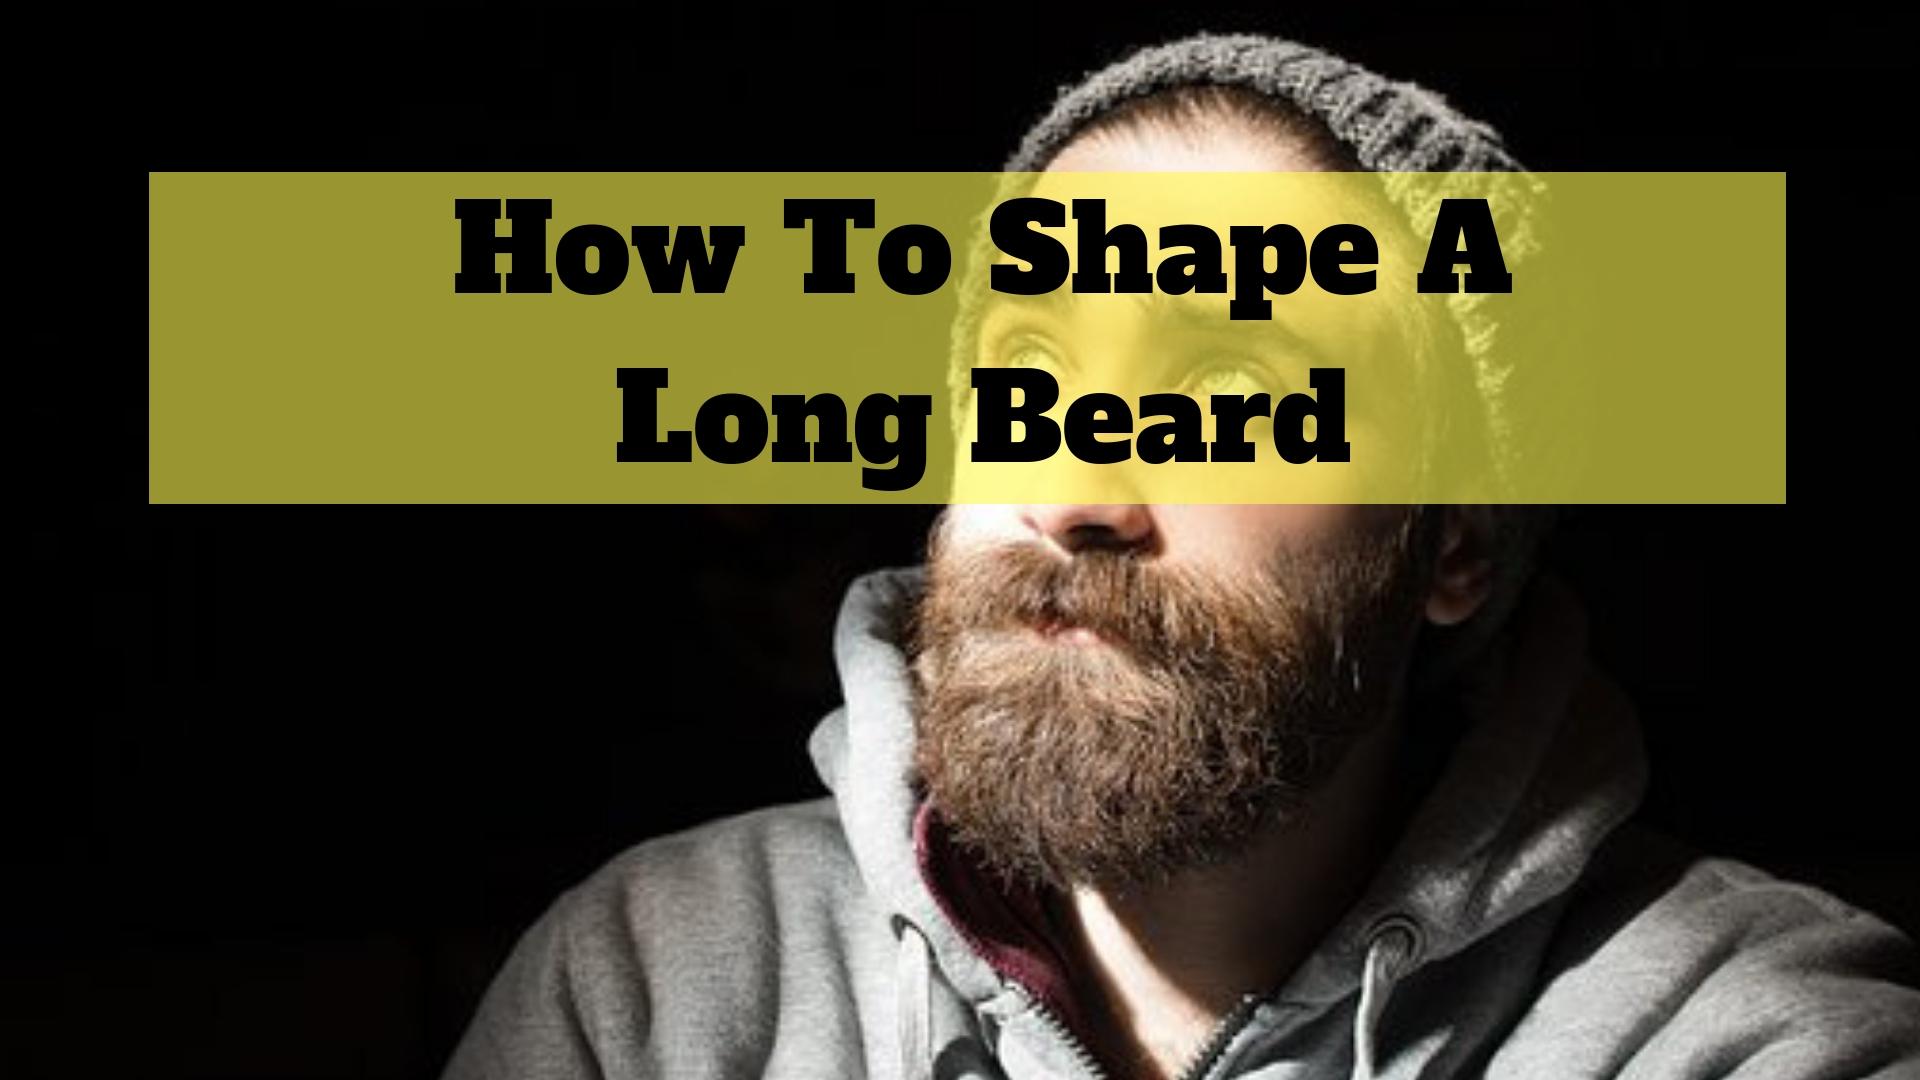 How To Shape A Long Beard